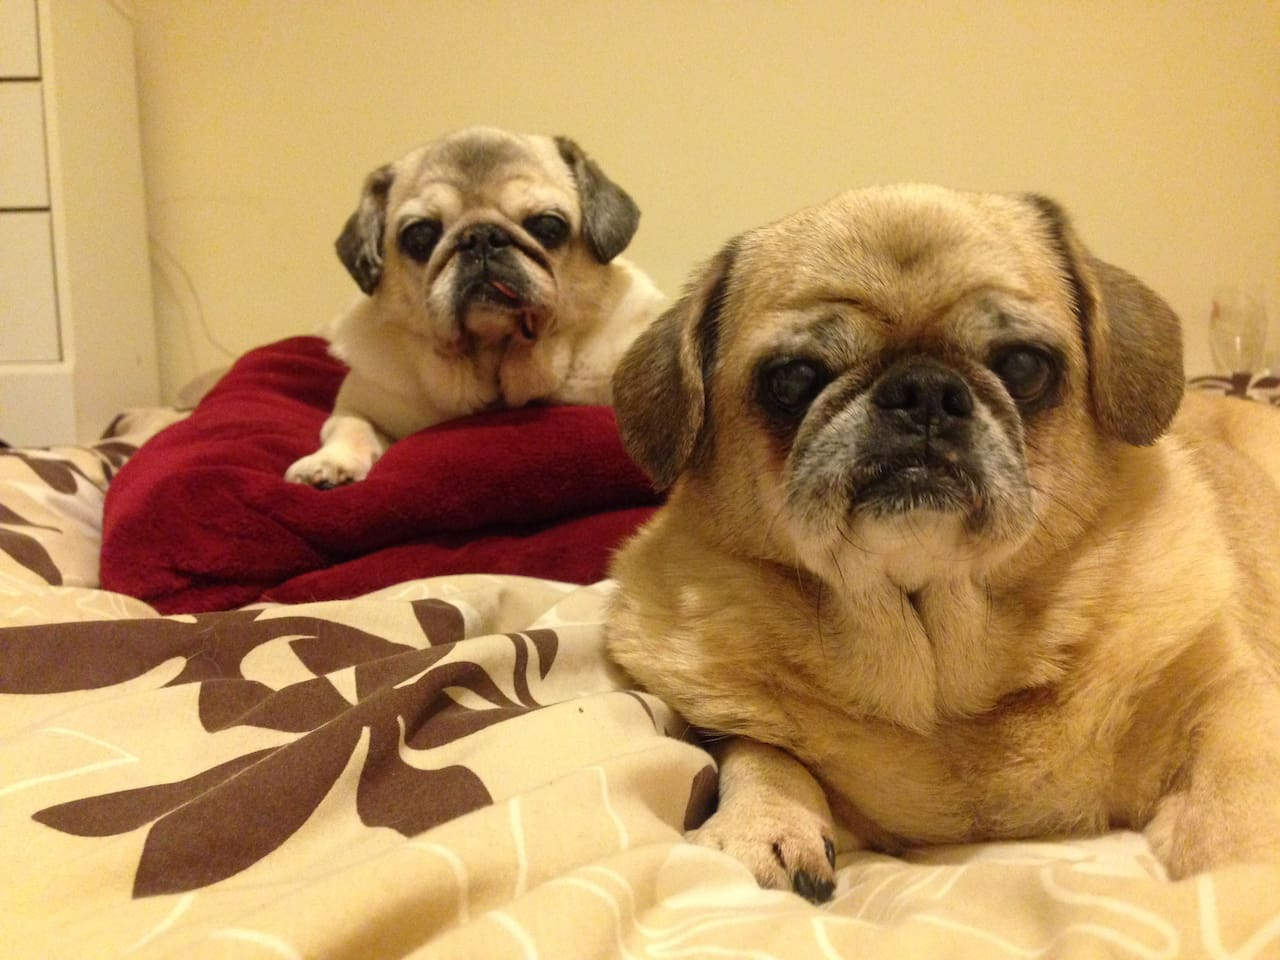 Hellooooooo we are Yoda  and Isabella, we live here also, and look forward to meeting you. We love lots of cuddles and hugs